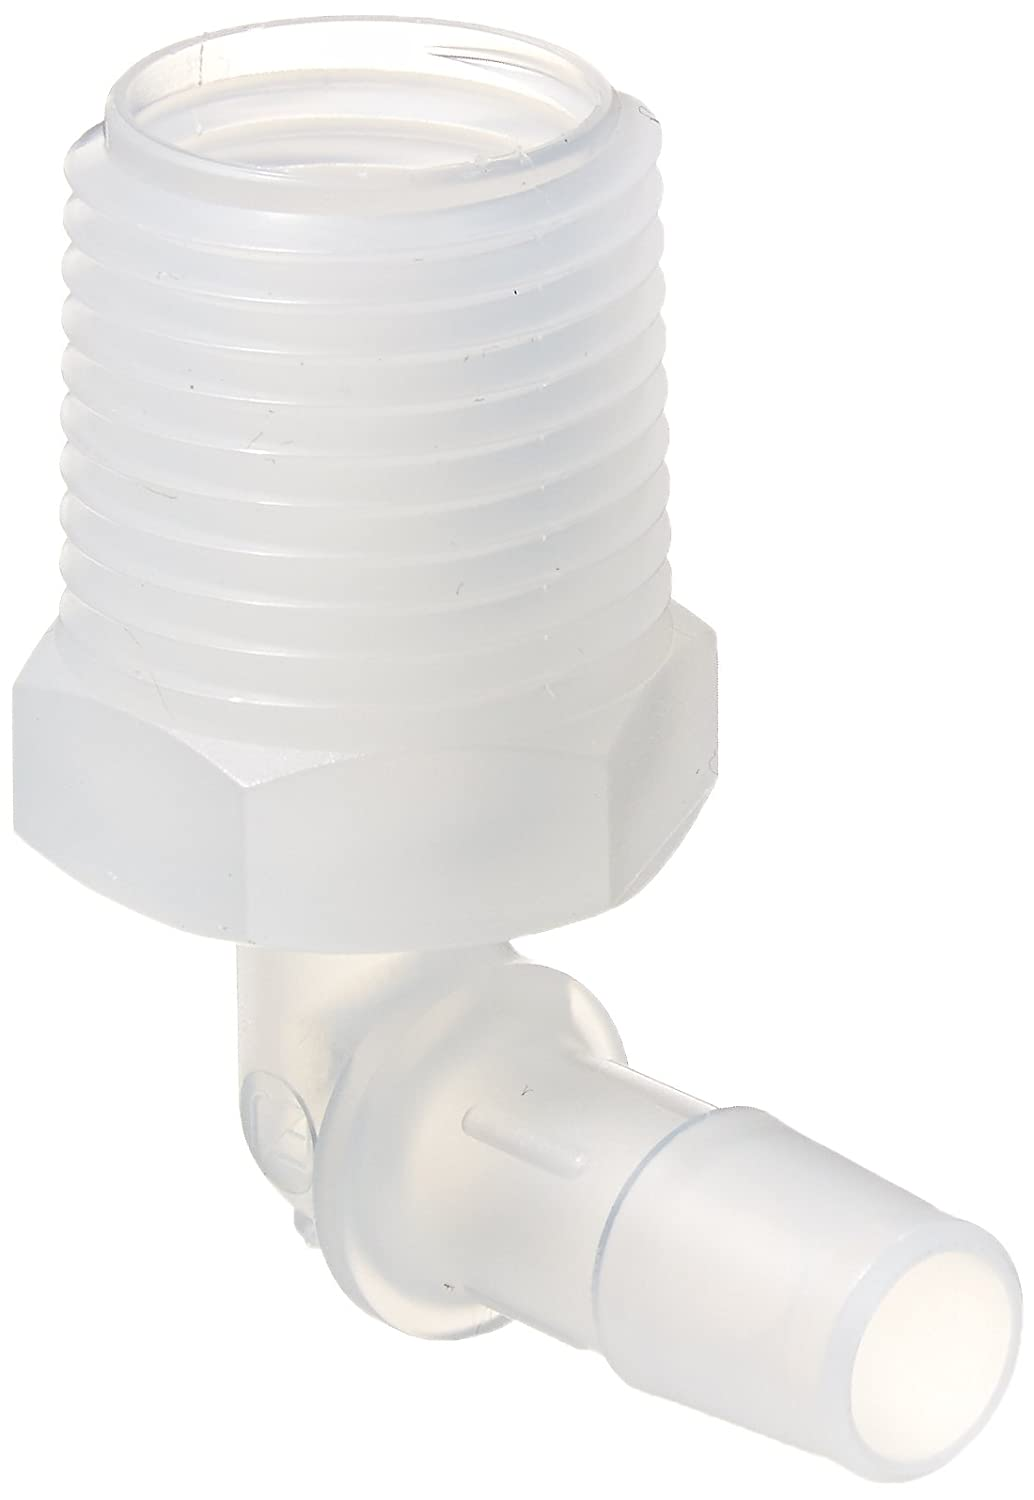 Pack of 10 1//2-14 NPT Thread to 3//8 Barb Pack of 10 1//2-14 NPT Thread to 3//8 Barb Eldon James L8-6PP Non-Animal Derived Polypropylene Threaded Elbow